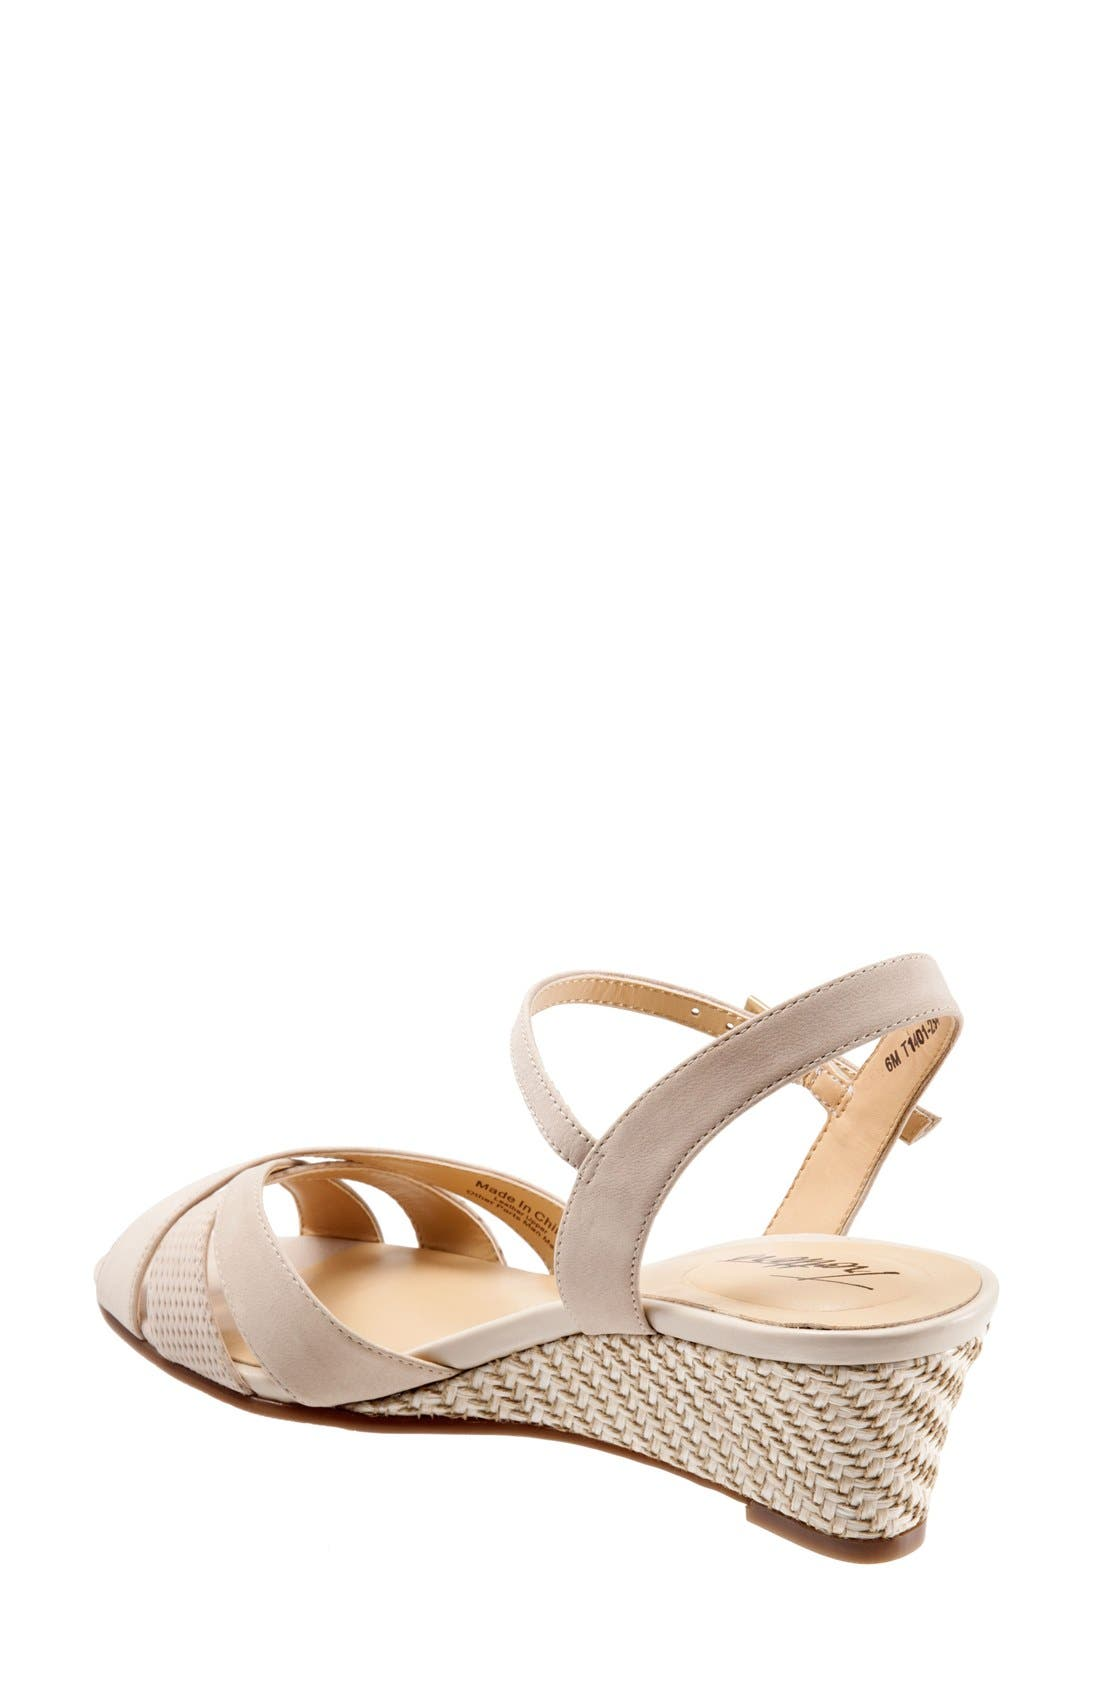 'Mickey' Wedge Sandal,                             Alternate thumbnail 27, color,